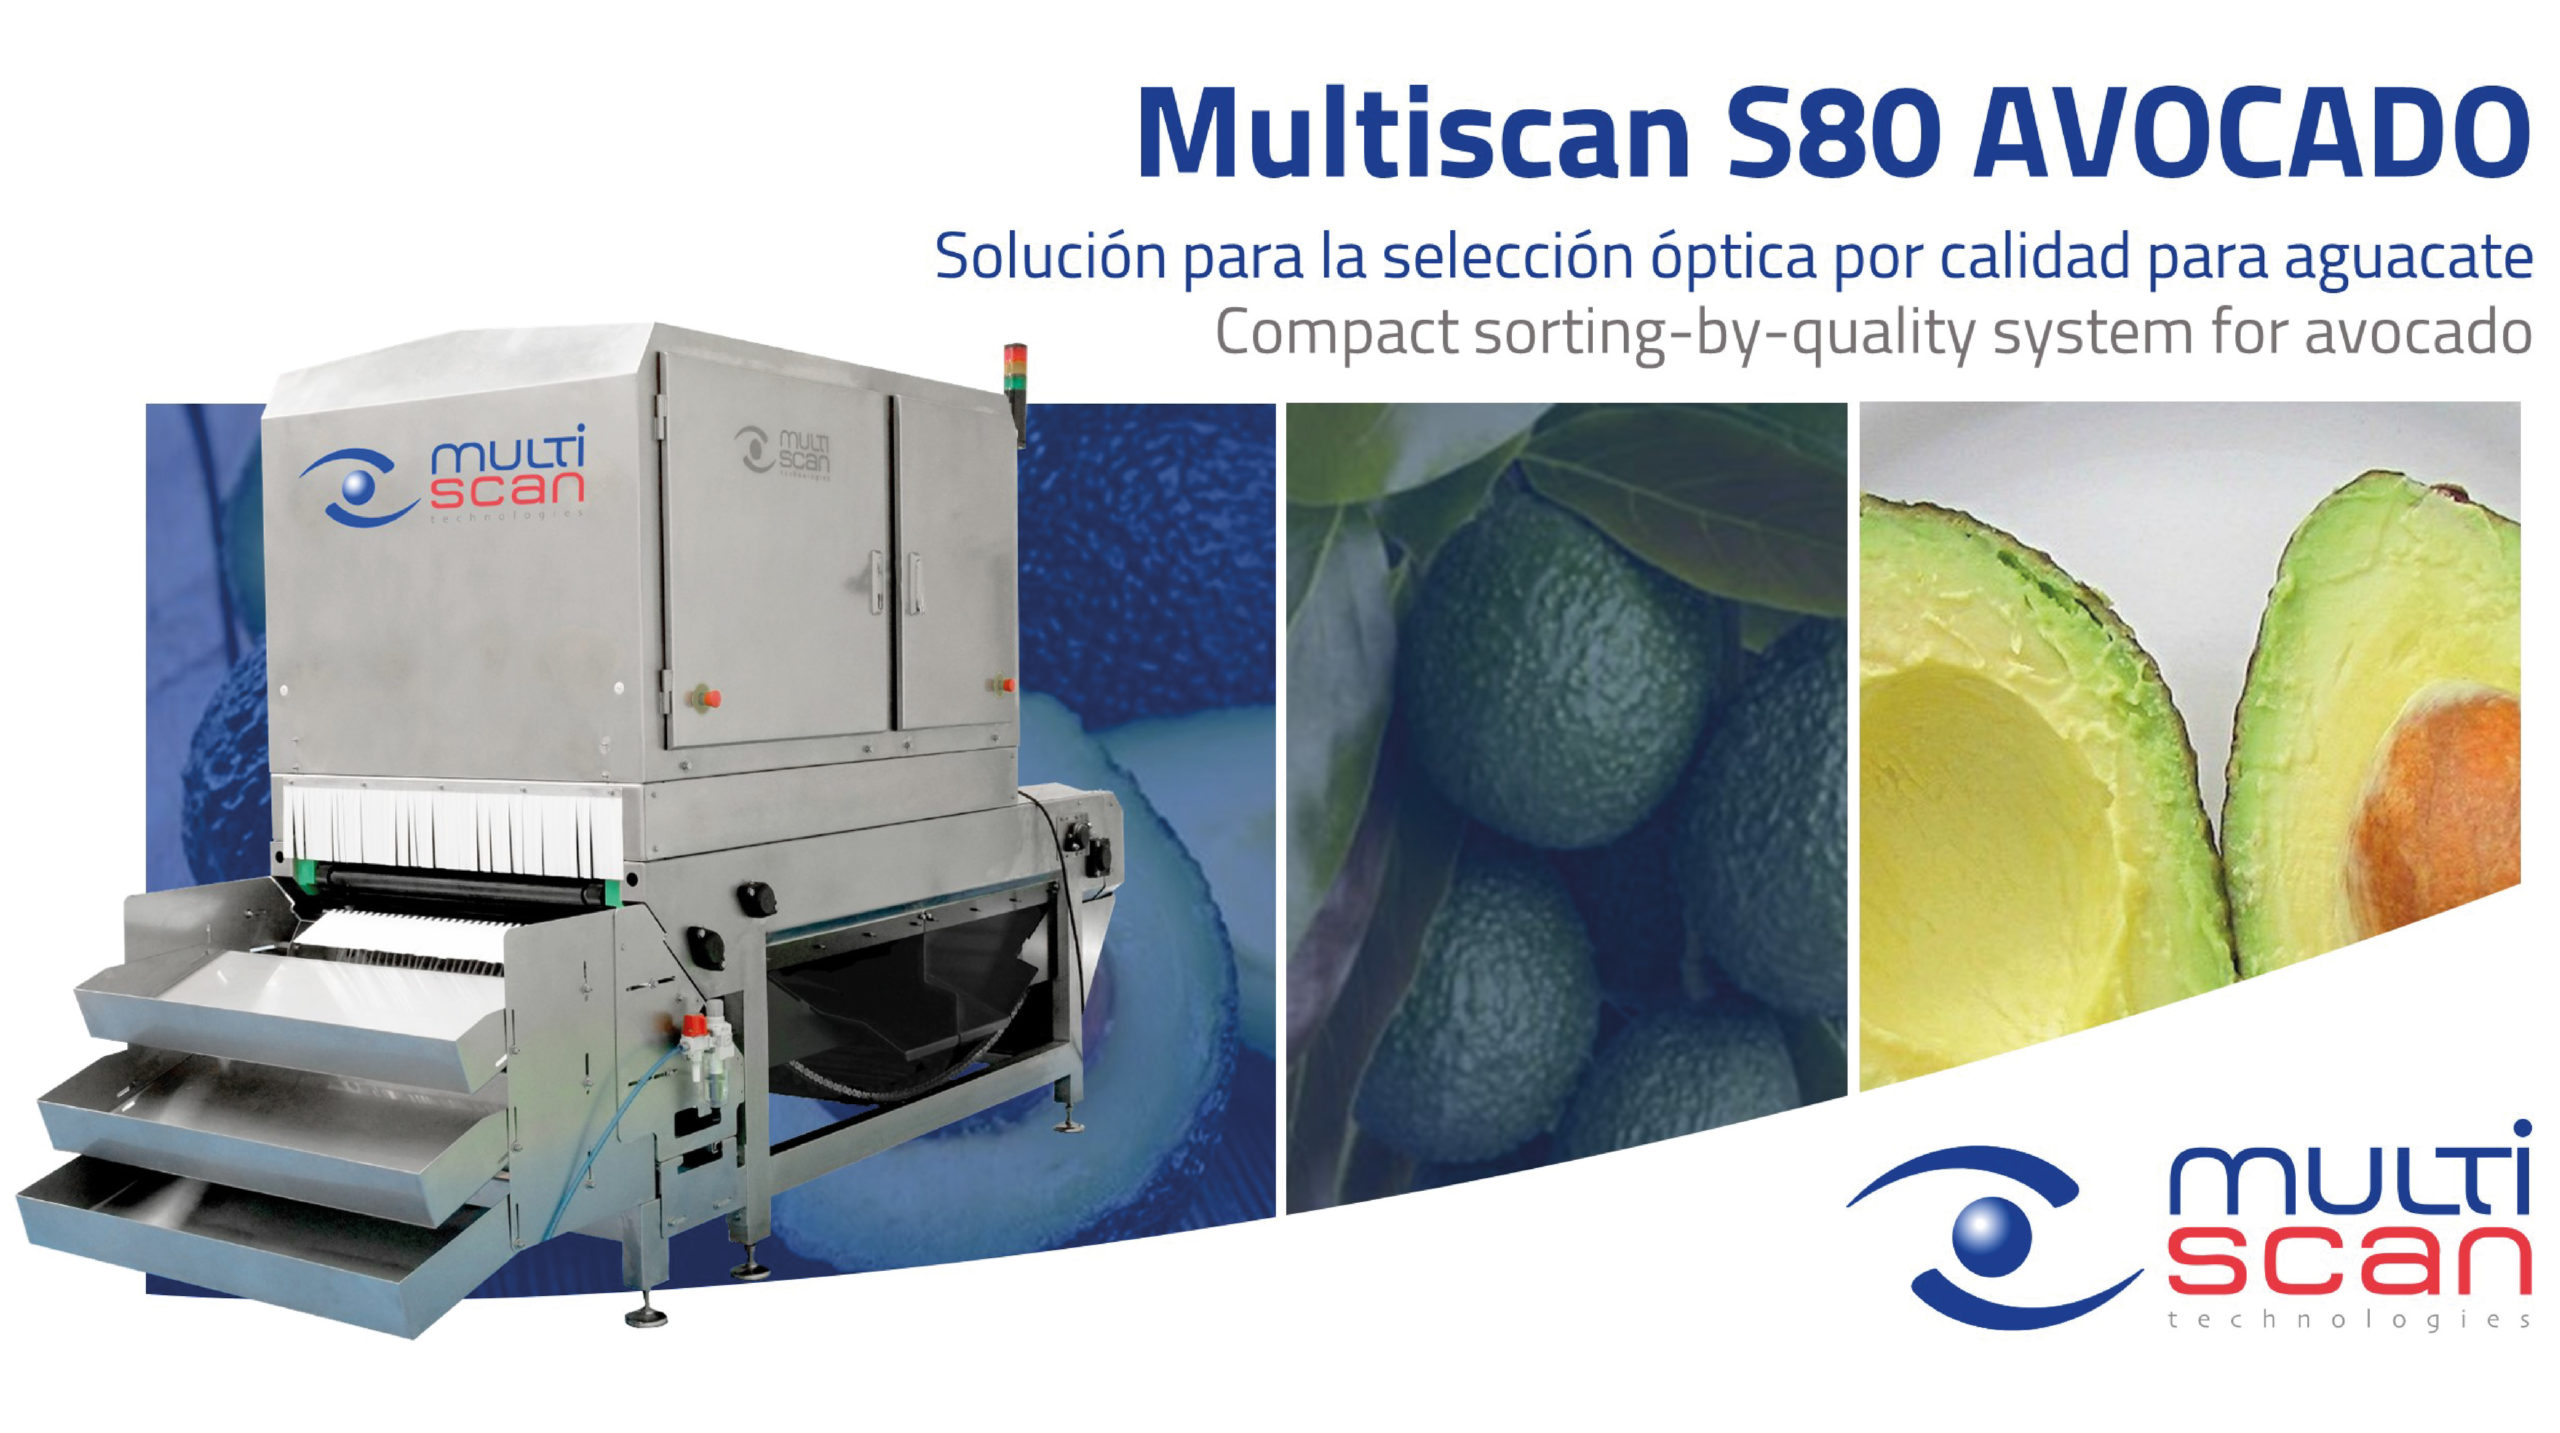 Multiscan S80 Avocado: compact sorting-by-quality system for avocado